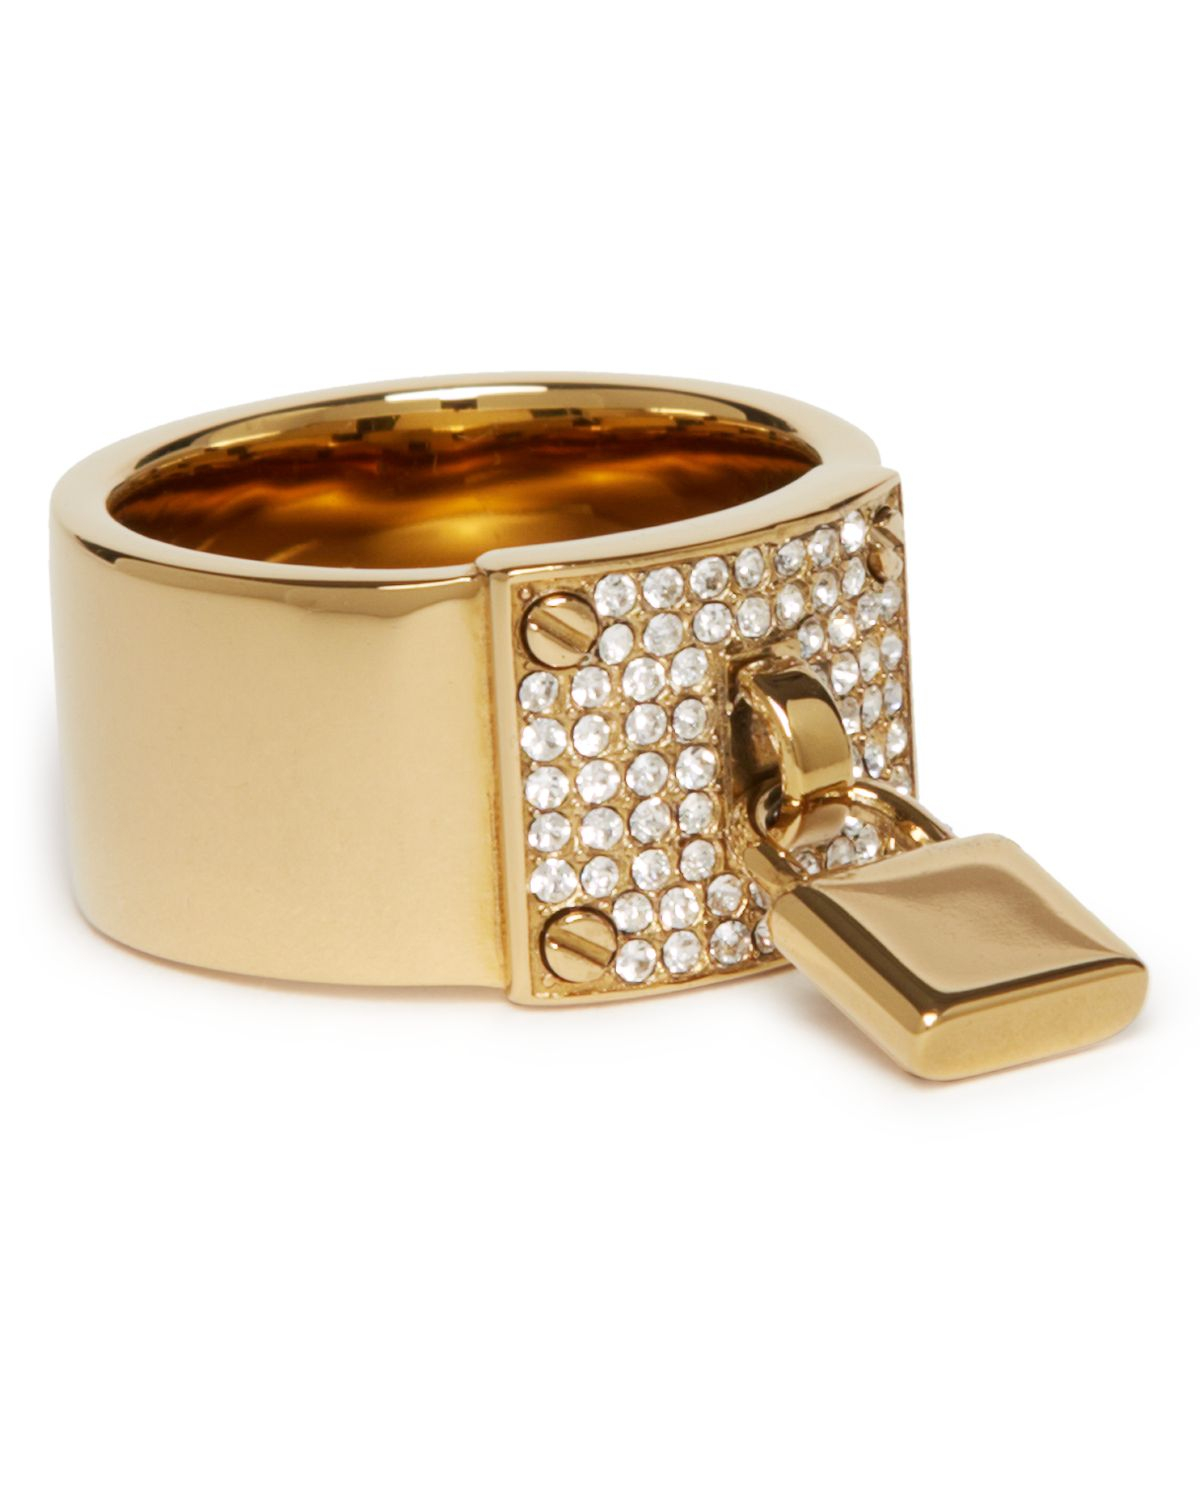 michael kors pave plaque ring with padlock charm in gold lyst. Black Bedroom Furniture Sets. Home Design Ideas